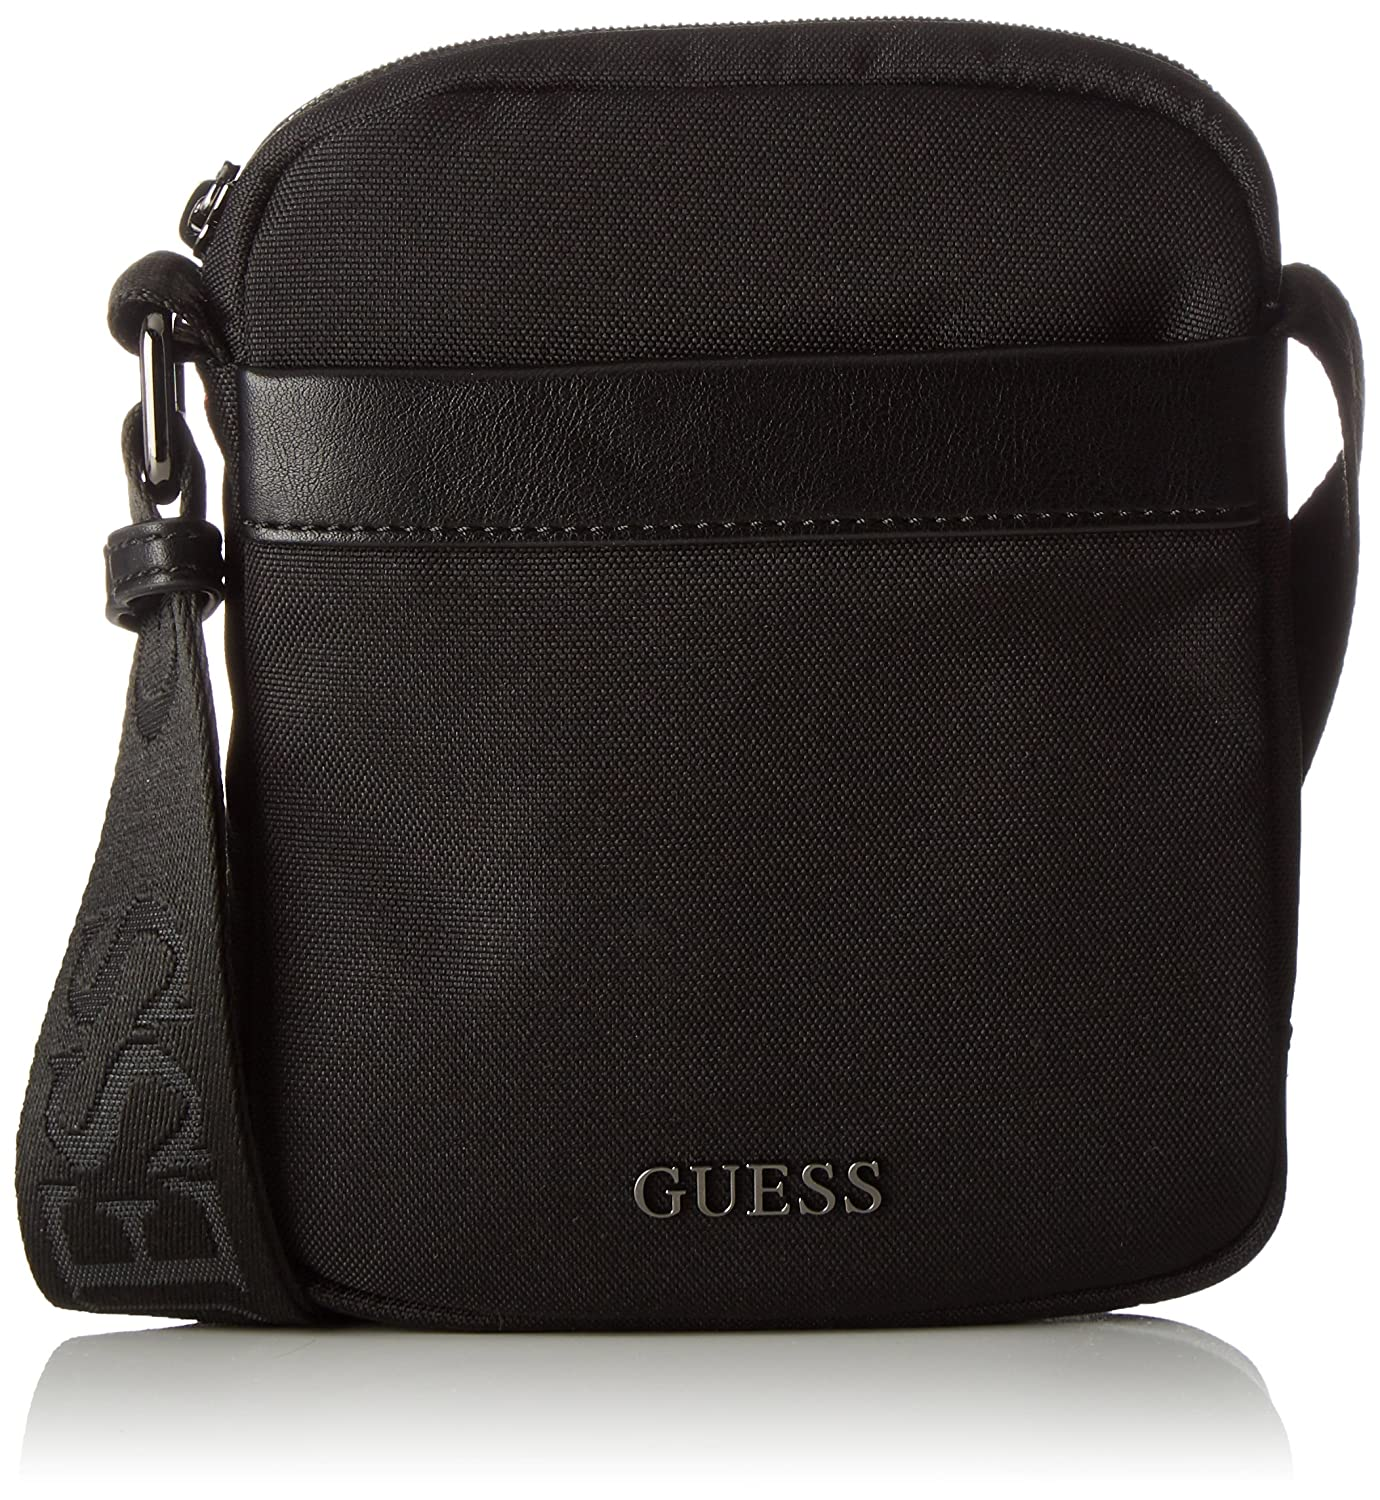 Guess - Sacoche Global Functional (hm6245 nyl74) taille 18 cm Guess Hm6245nyl74 Sacs portés main homme Nero 4x18x14.5 cm (W x H L)